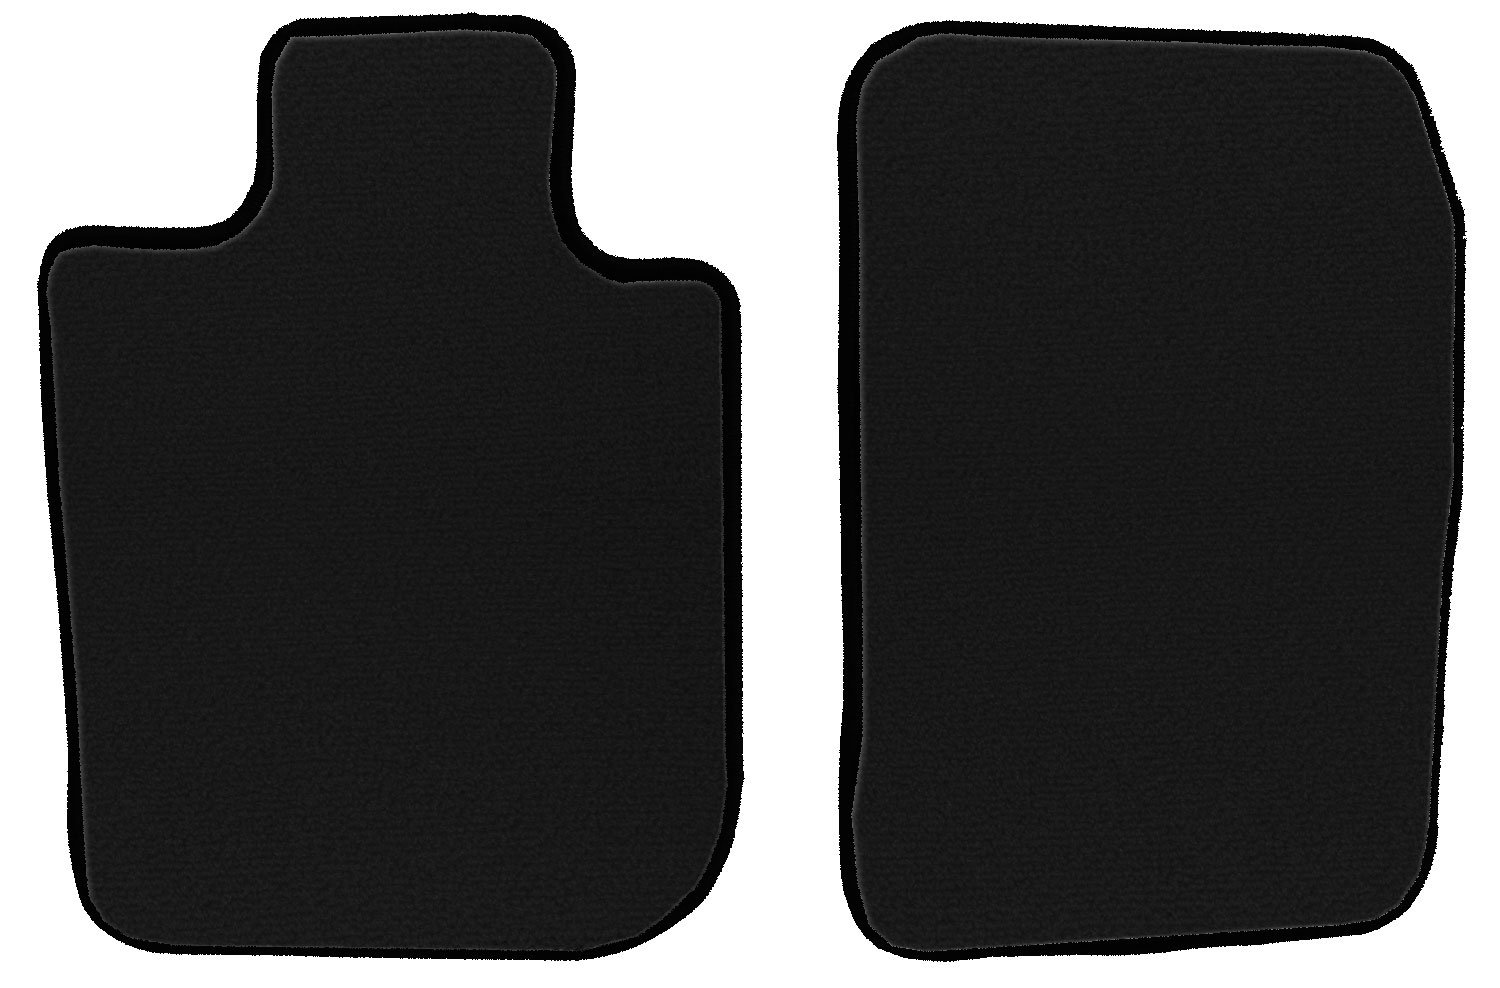 1992 1998 Chevrolet Tracker 4Door Black Loop Driver /& Passenger 1991 1997 1993 GGBAILEY D3292A-F1A-BK-LP Custom Fit Automotive Carpet Floor Mats for 1990 1995 1994 1996